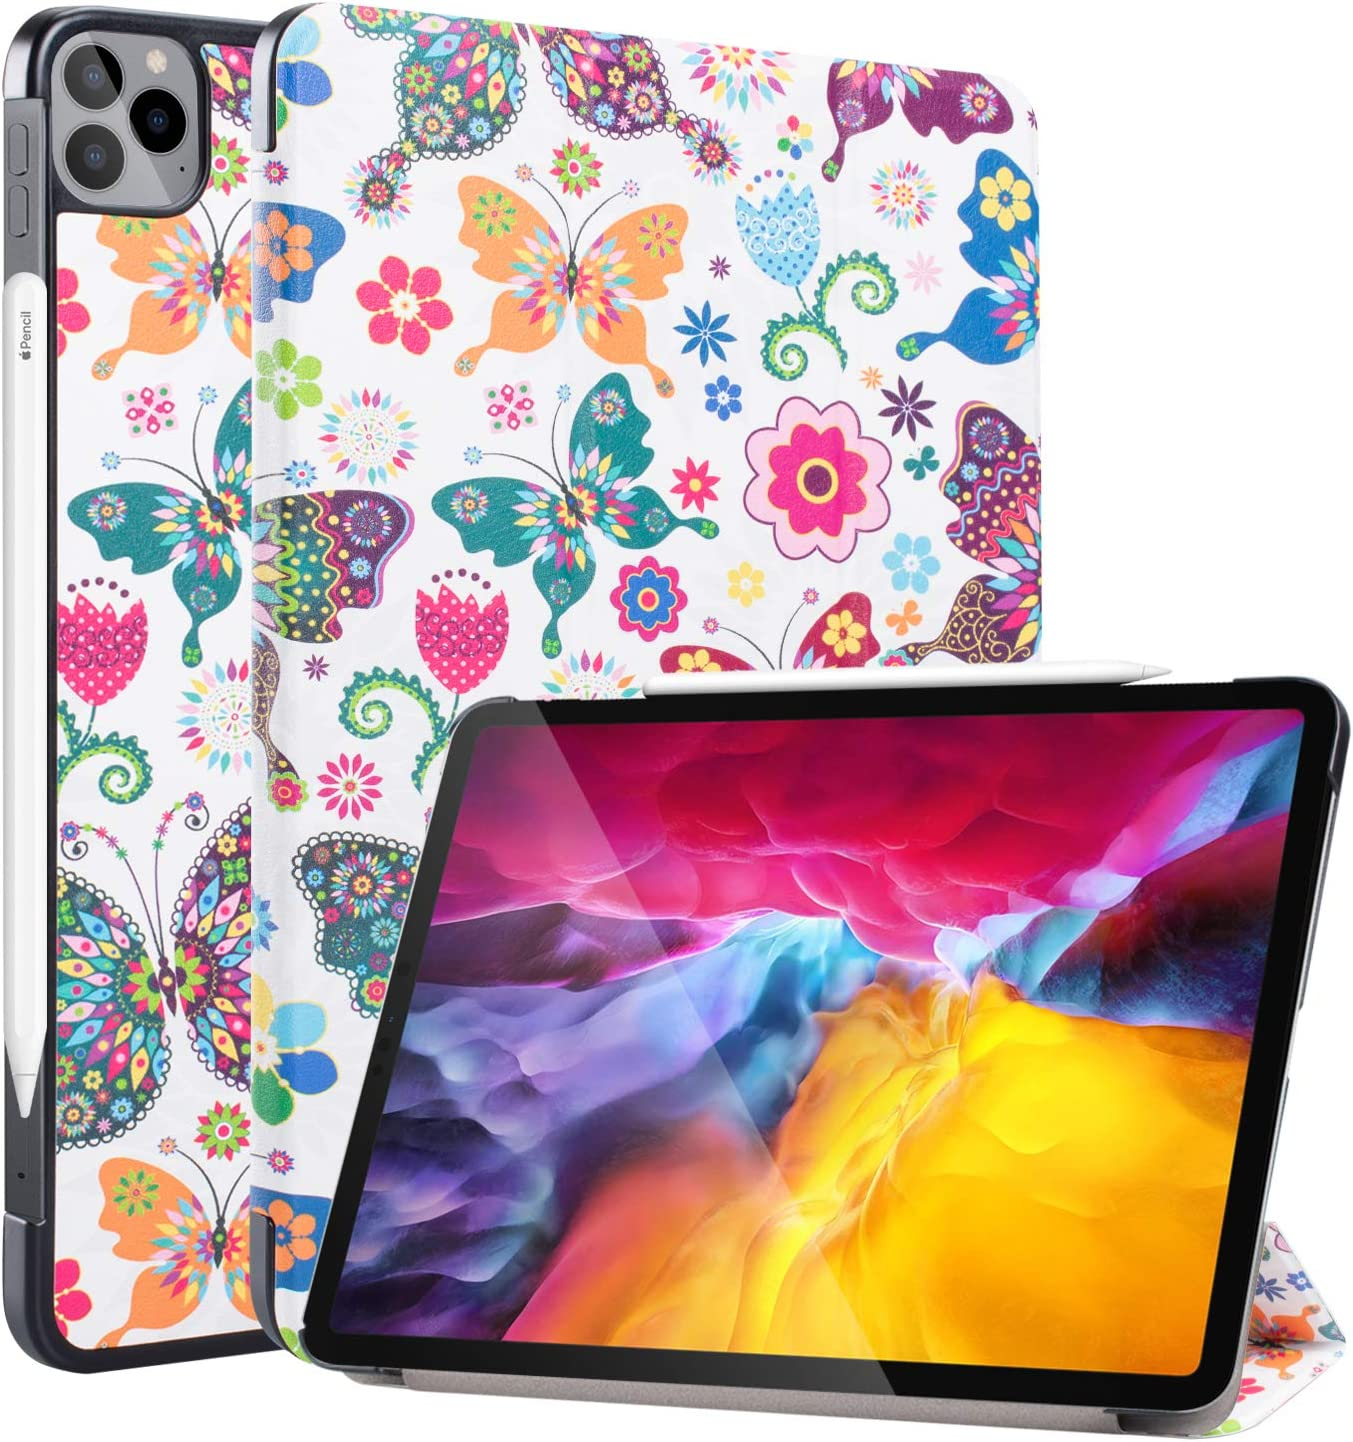 Neepanda Case for New iPad Pro 11 2020 2nd Generation, [Support Apple Pencil Charging] Slim Lightweight Smart Tri-Fold Stand Case for iPad Pro 11 inch 2nd Gen 2020, Auto Wake/Sleep, Butterfly